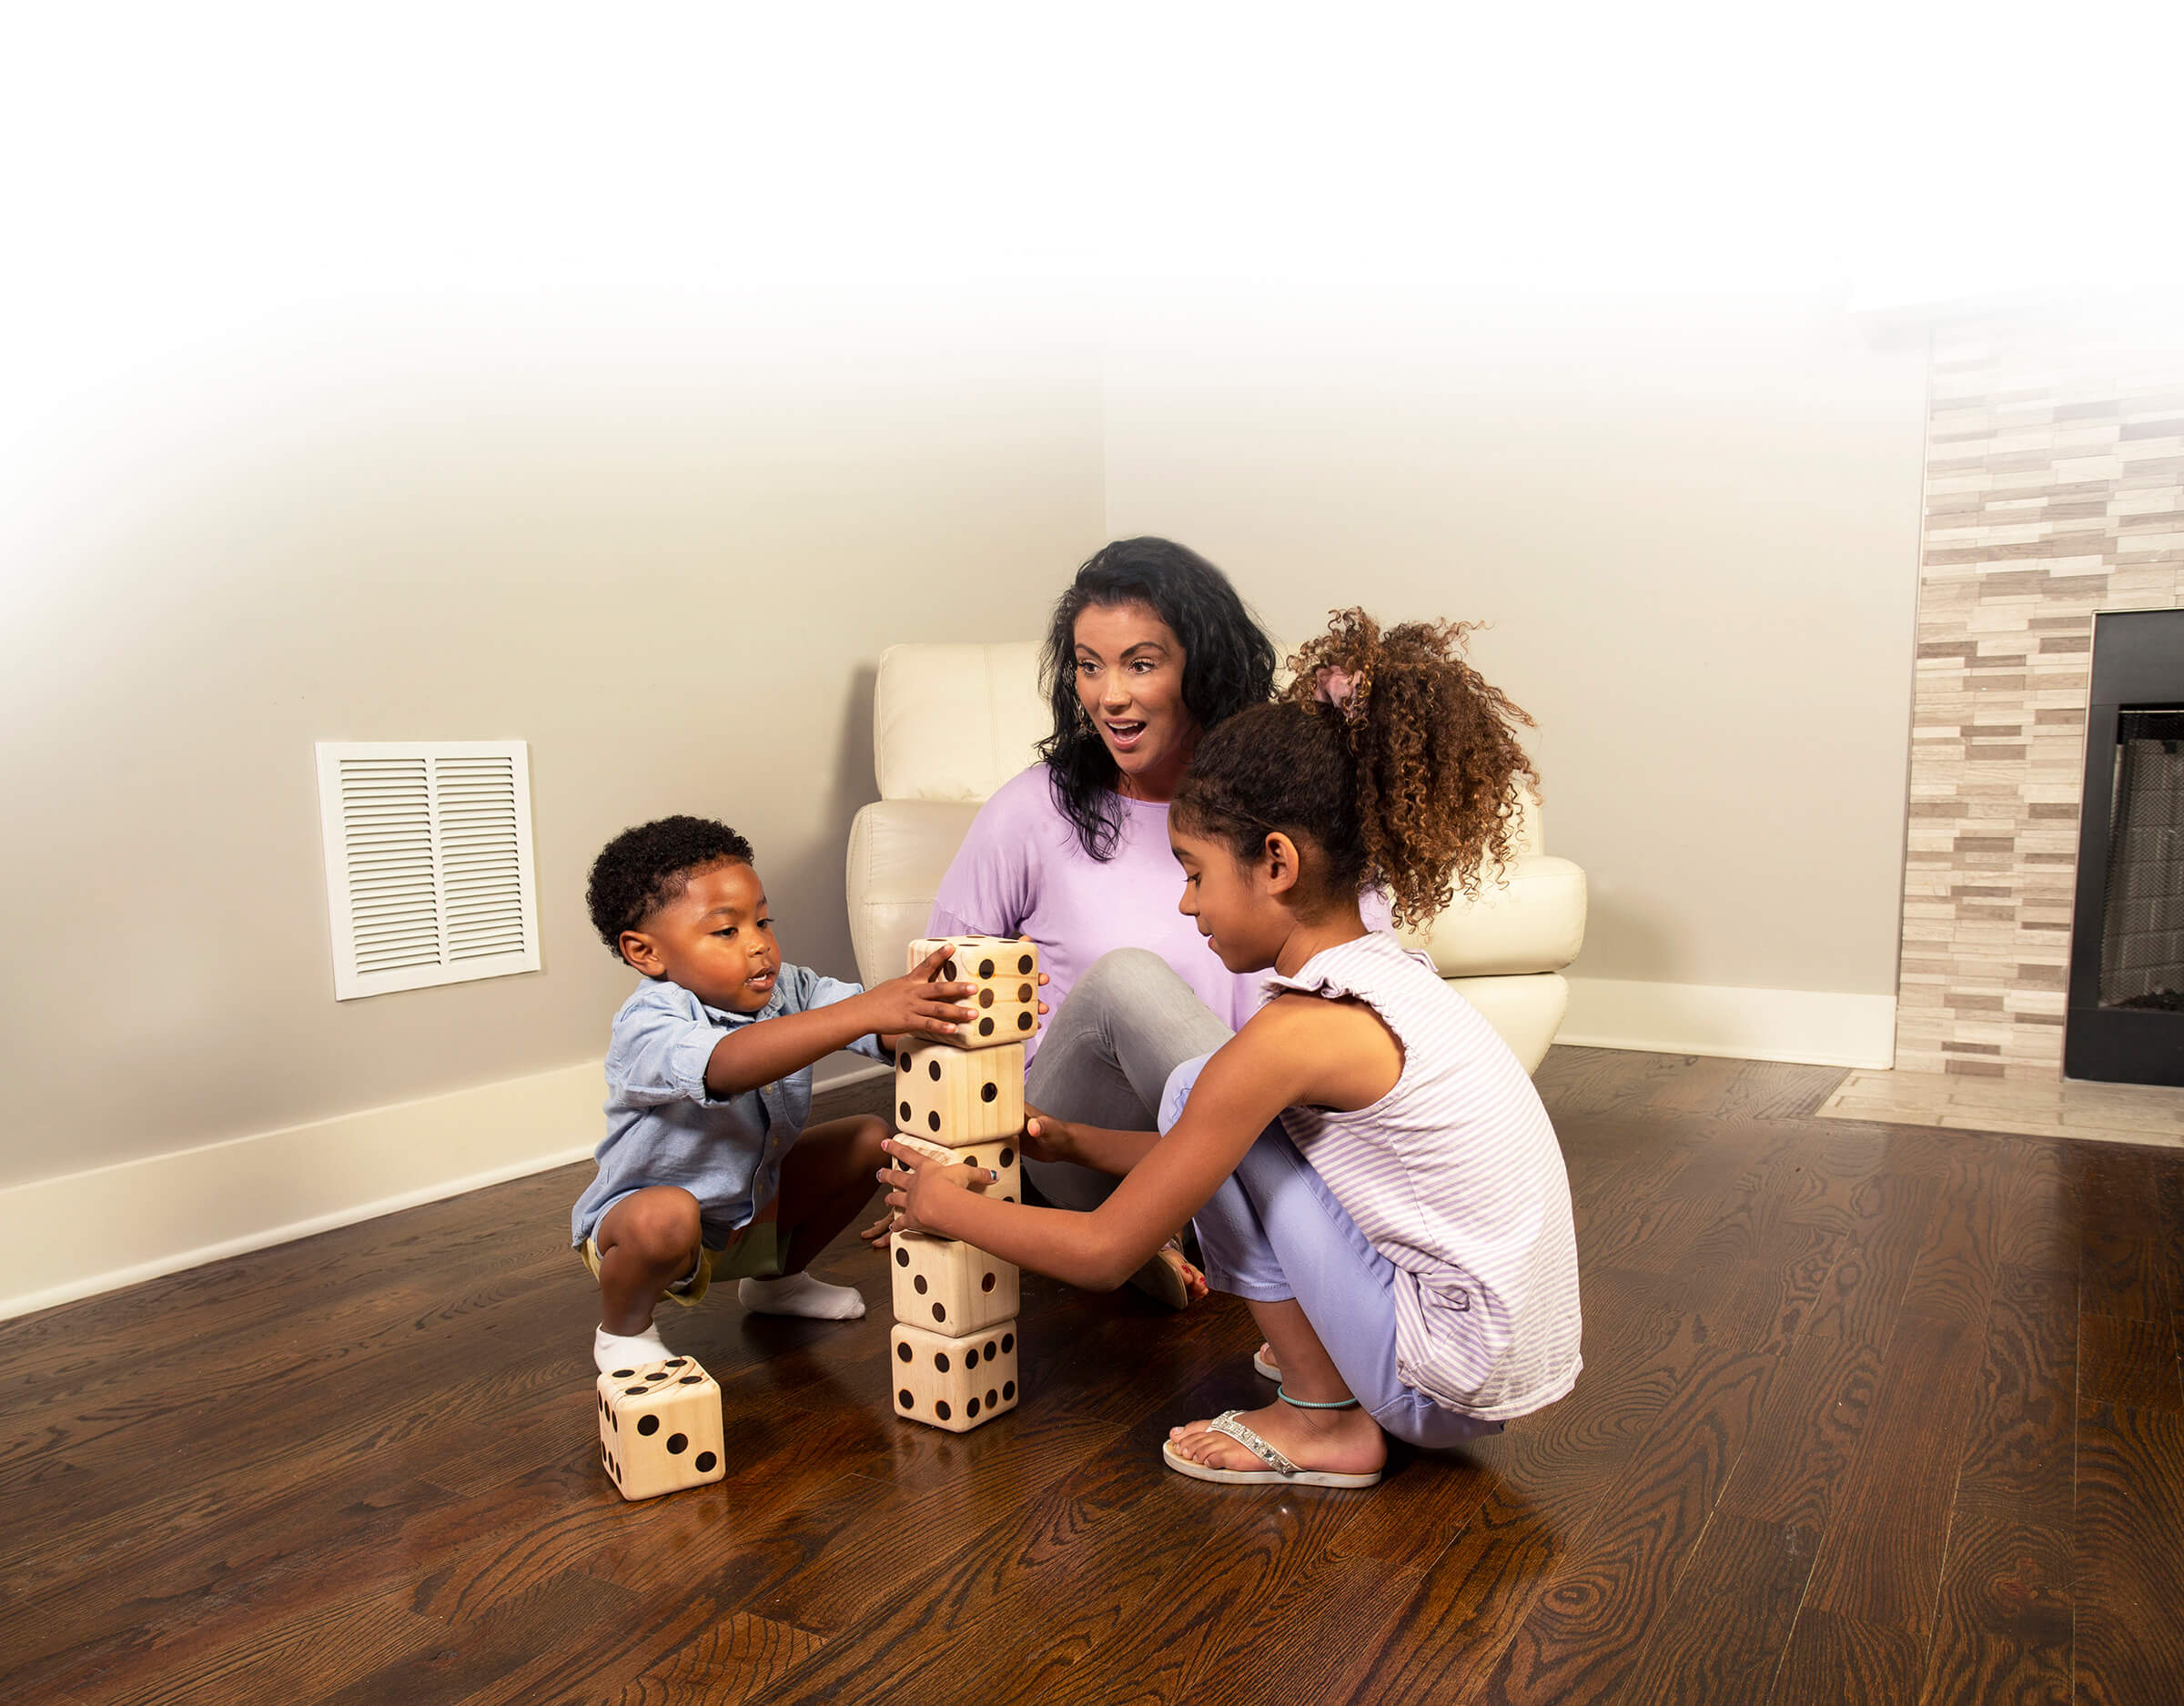 Mom and children playing on wood floors in Long Beach